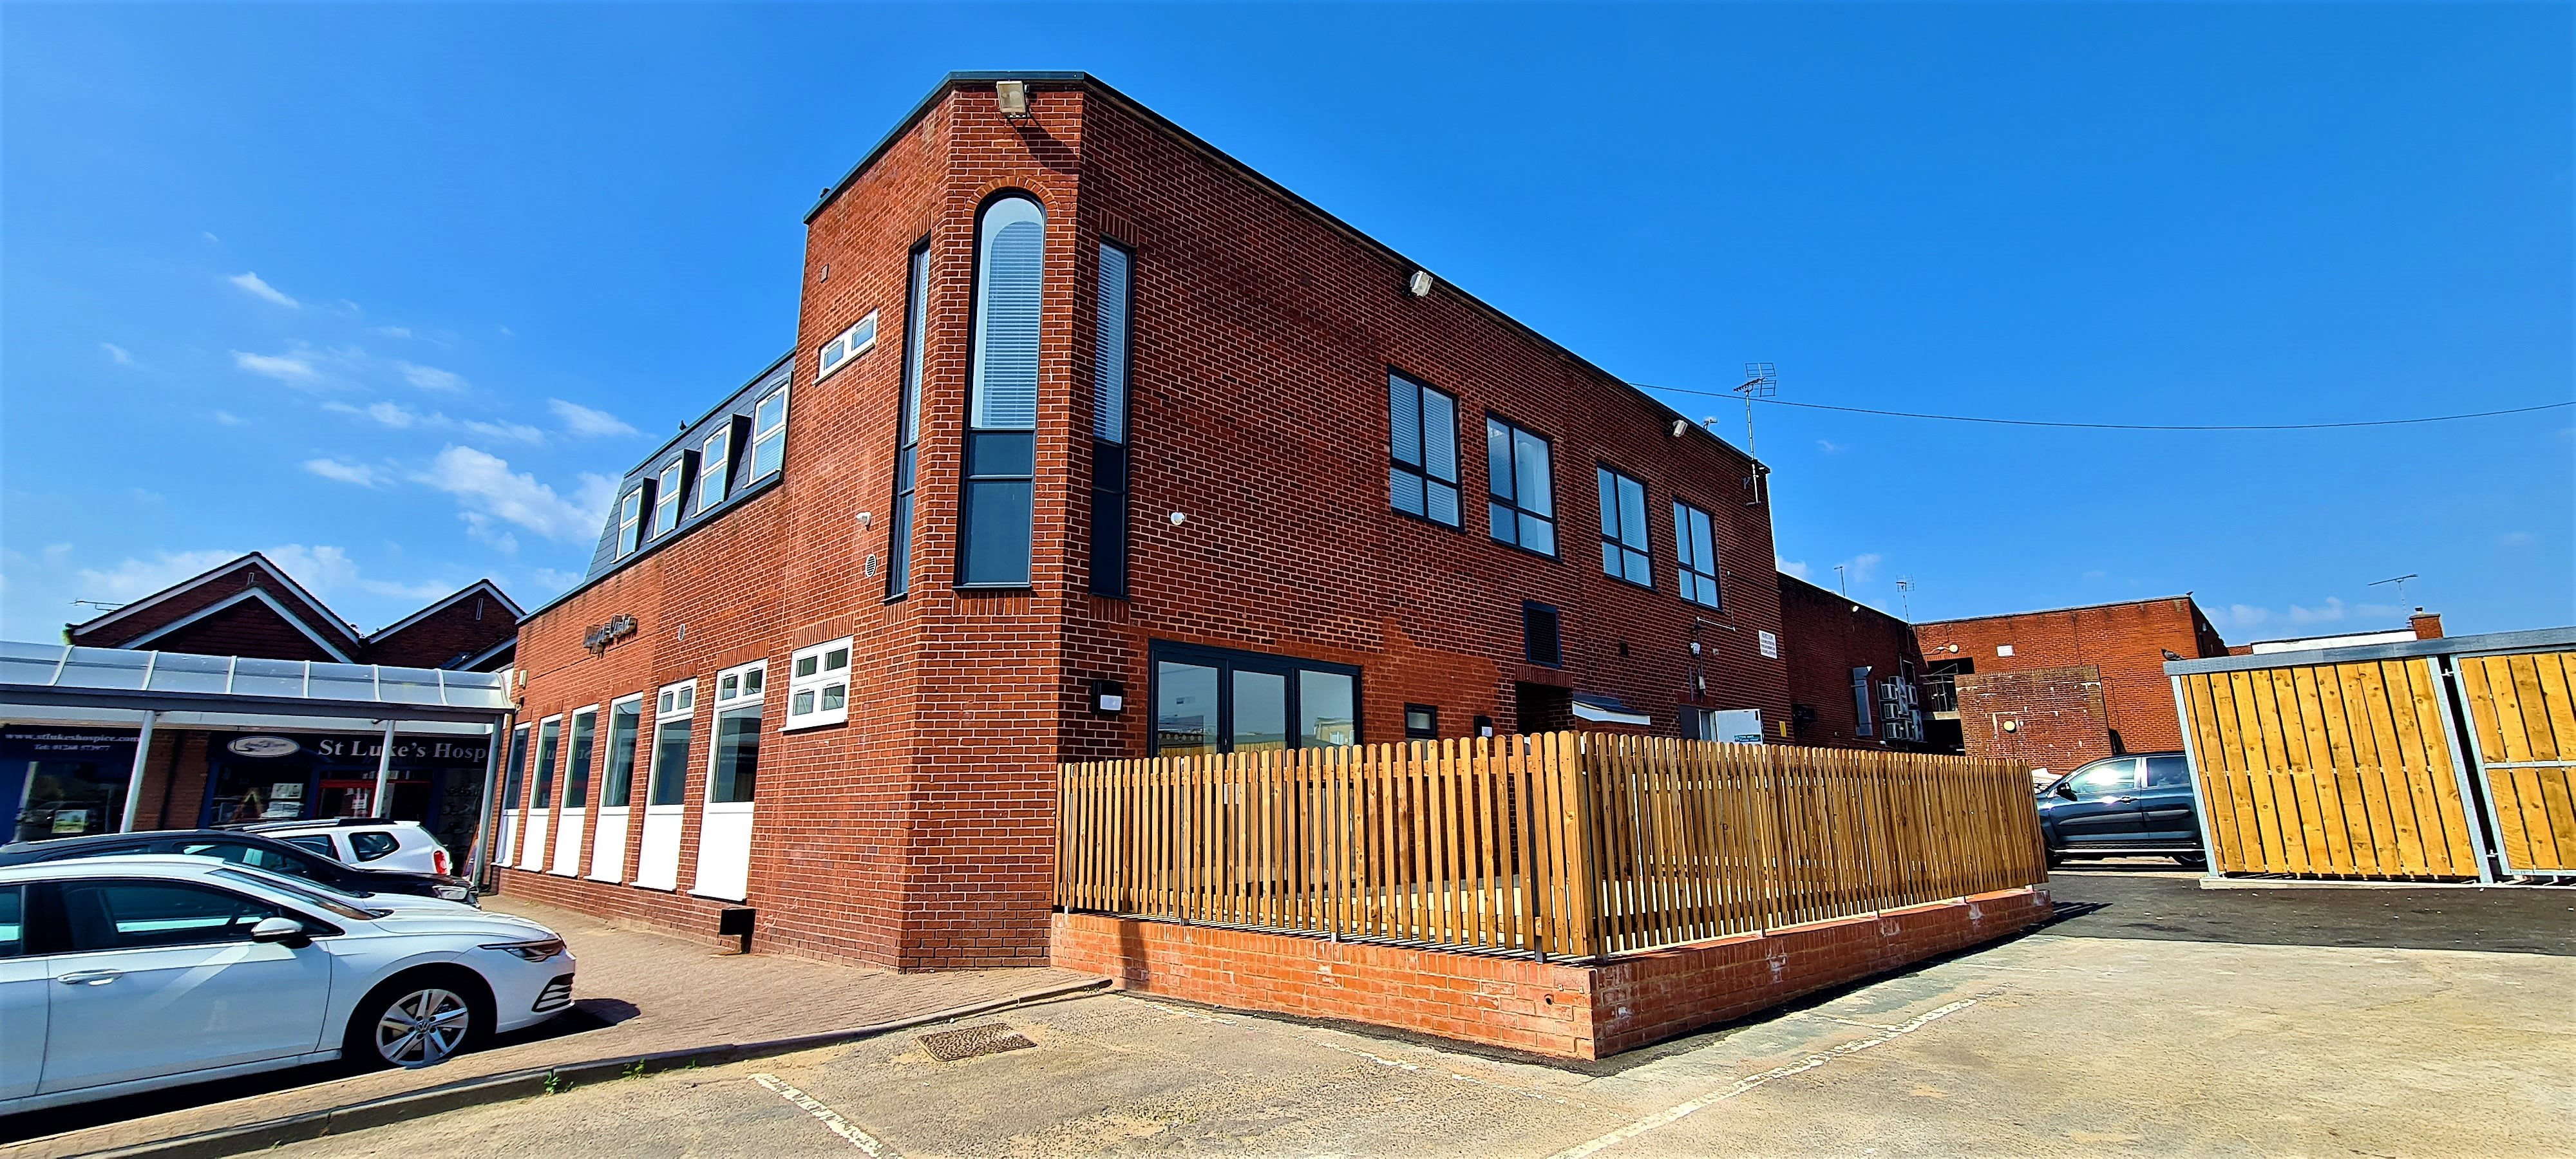 2 bed flat to rent in Ladygate Centre, Wickford, SS12